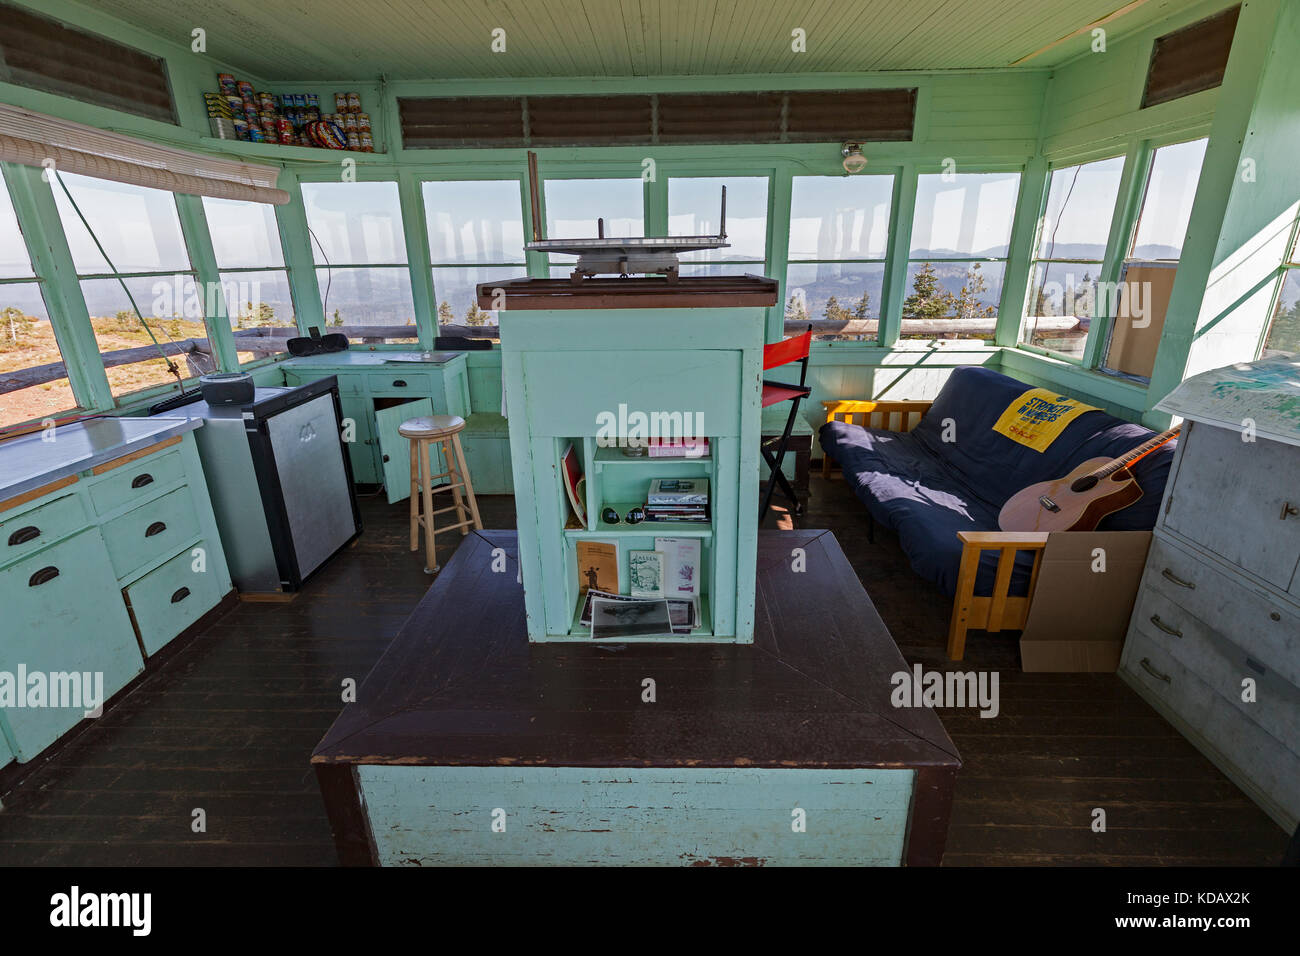 The interior of the Mt. Harkness fire lookout station atop Mt. Harkness in Lassen Volcanic National Park. - Stock Image